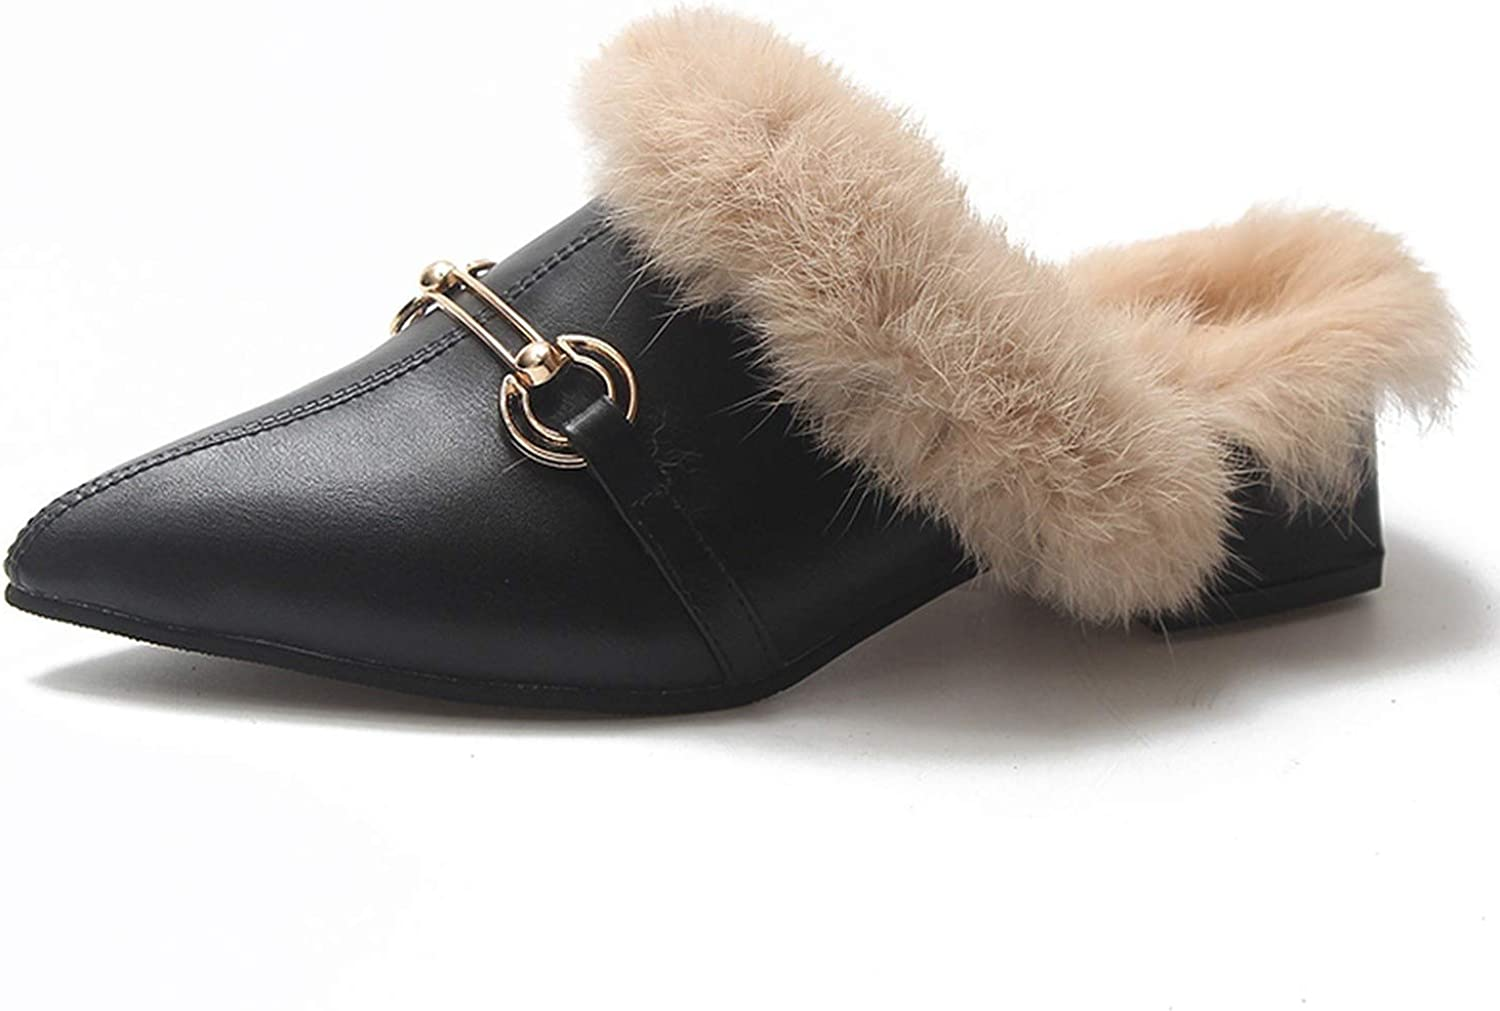 Pointed Toe Mules shoes Women Plush Warm Fur Slippers Fluffy Furry Slides Winter Outside Med Heels Slippers